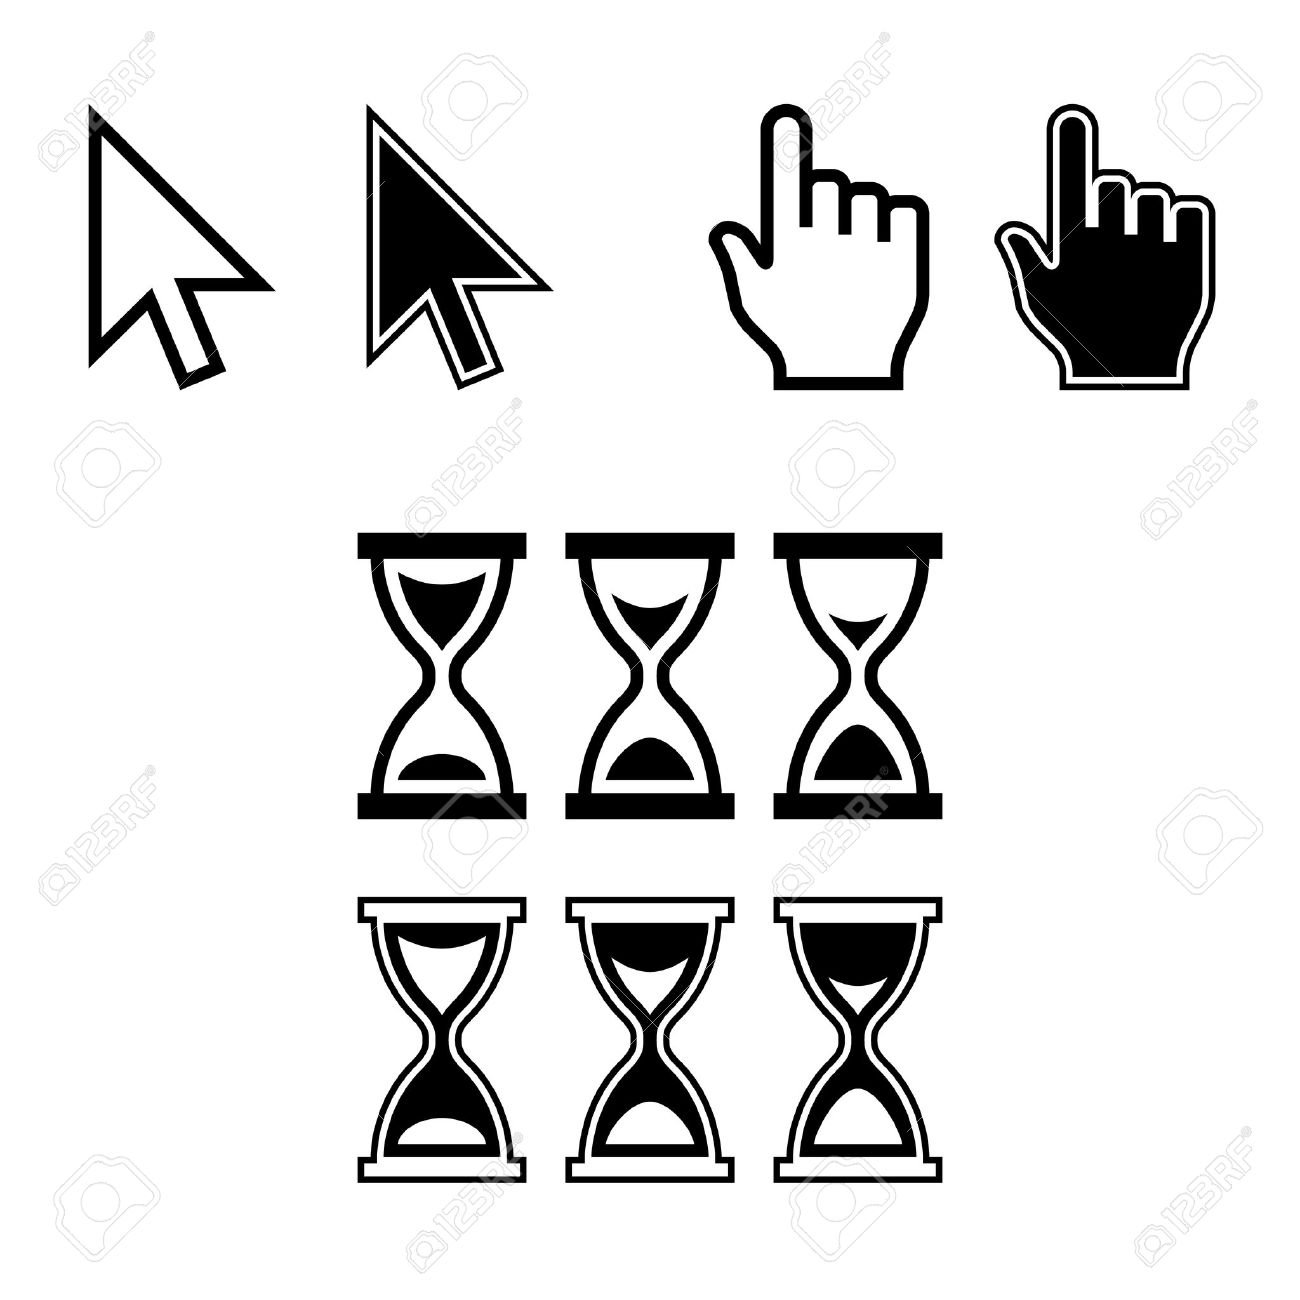 Cursor Icons. Mouse Pointer Set. Arrow, Hand, Hourglass. Vector Stock Vector - 23860350